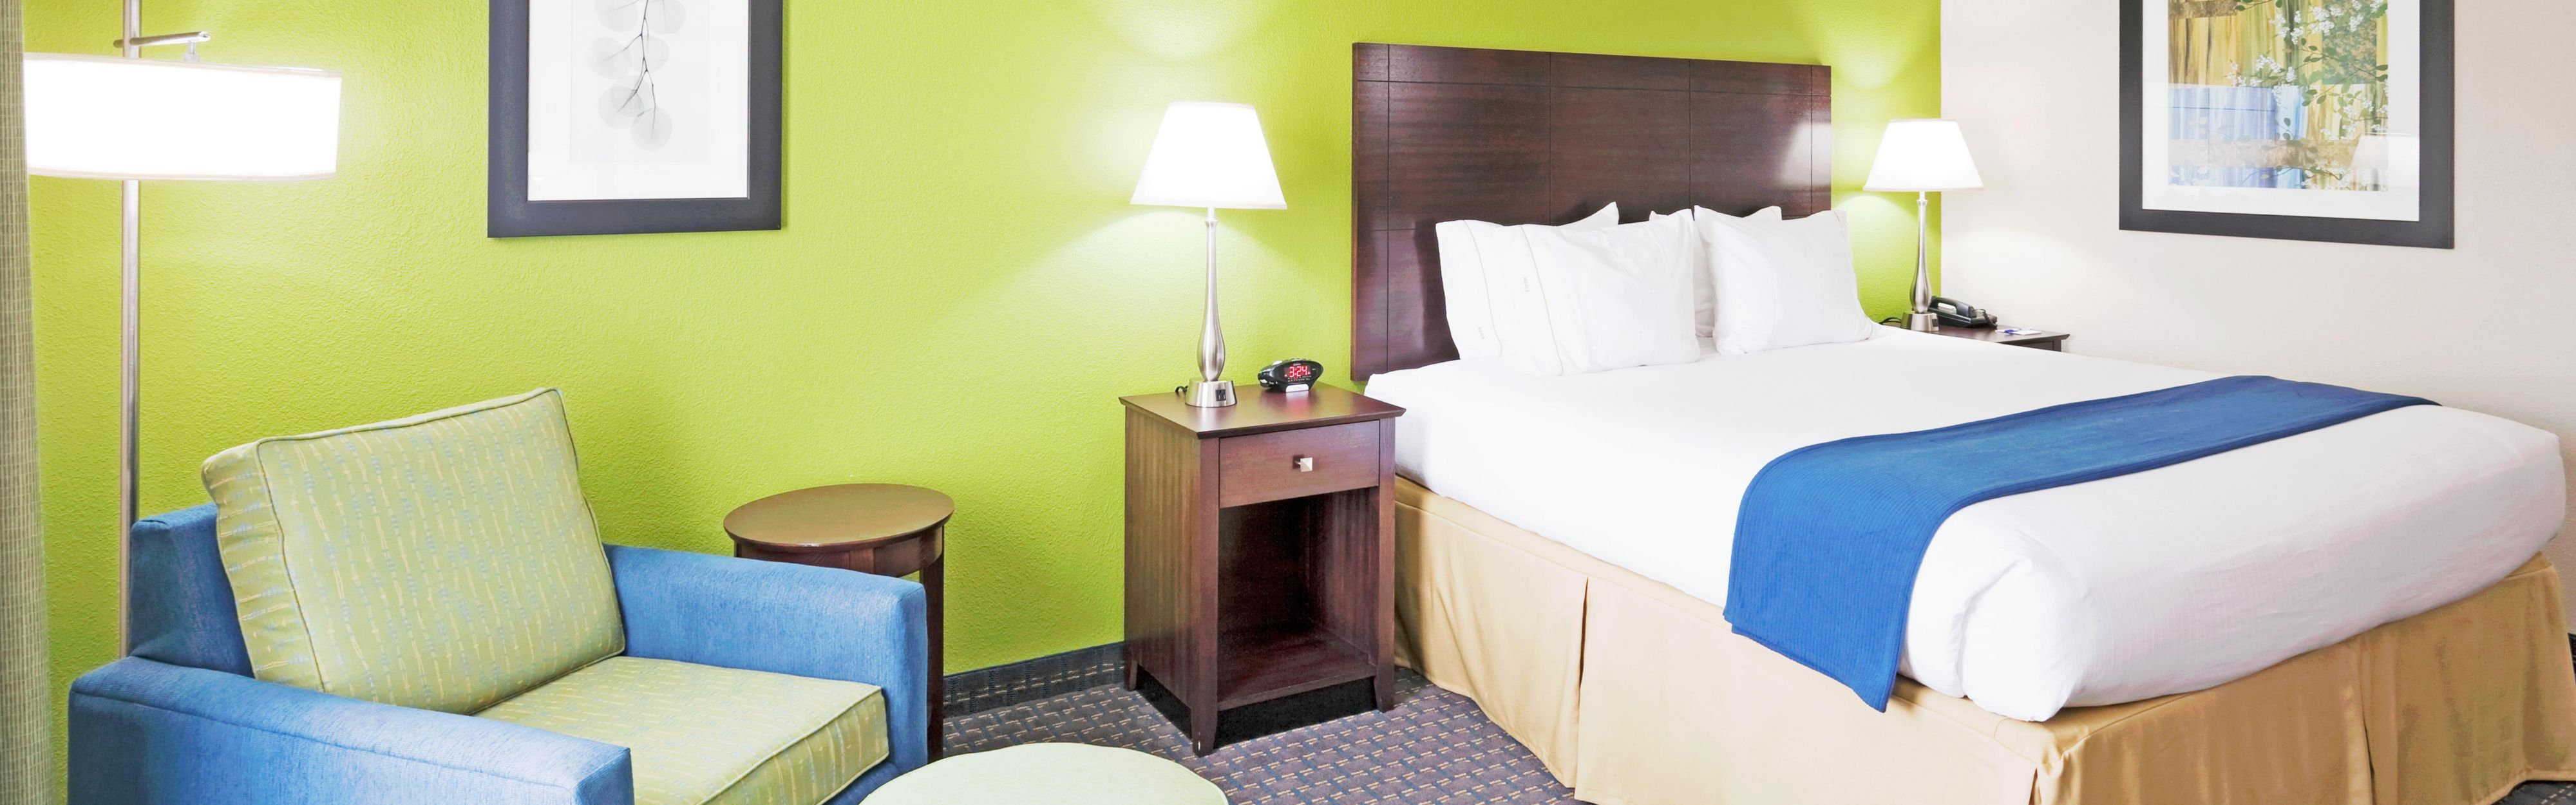 Holiday Inn Express & Suites Knoxville-Farragut image 1